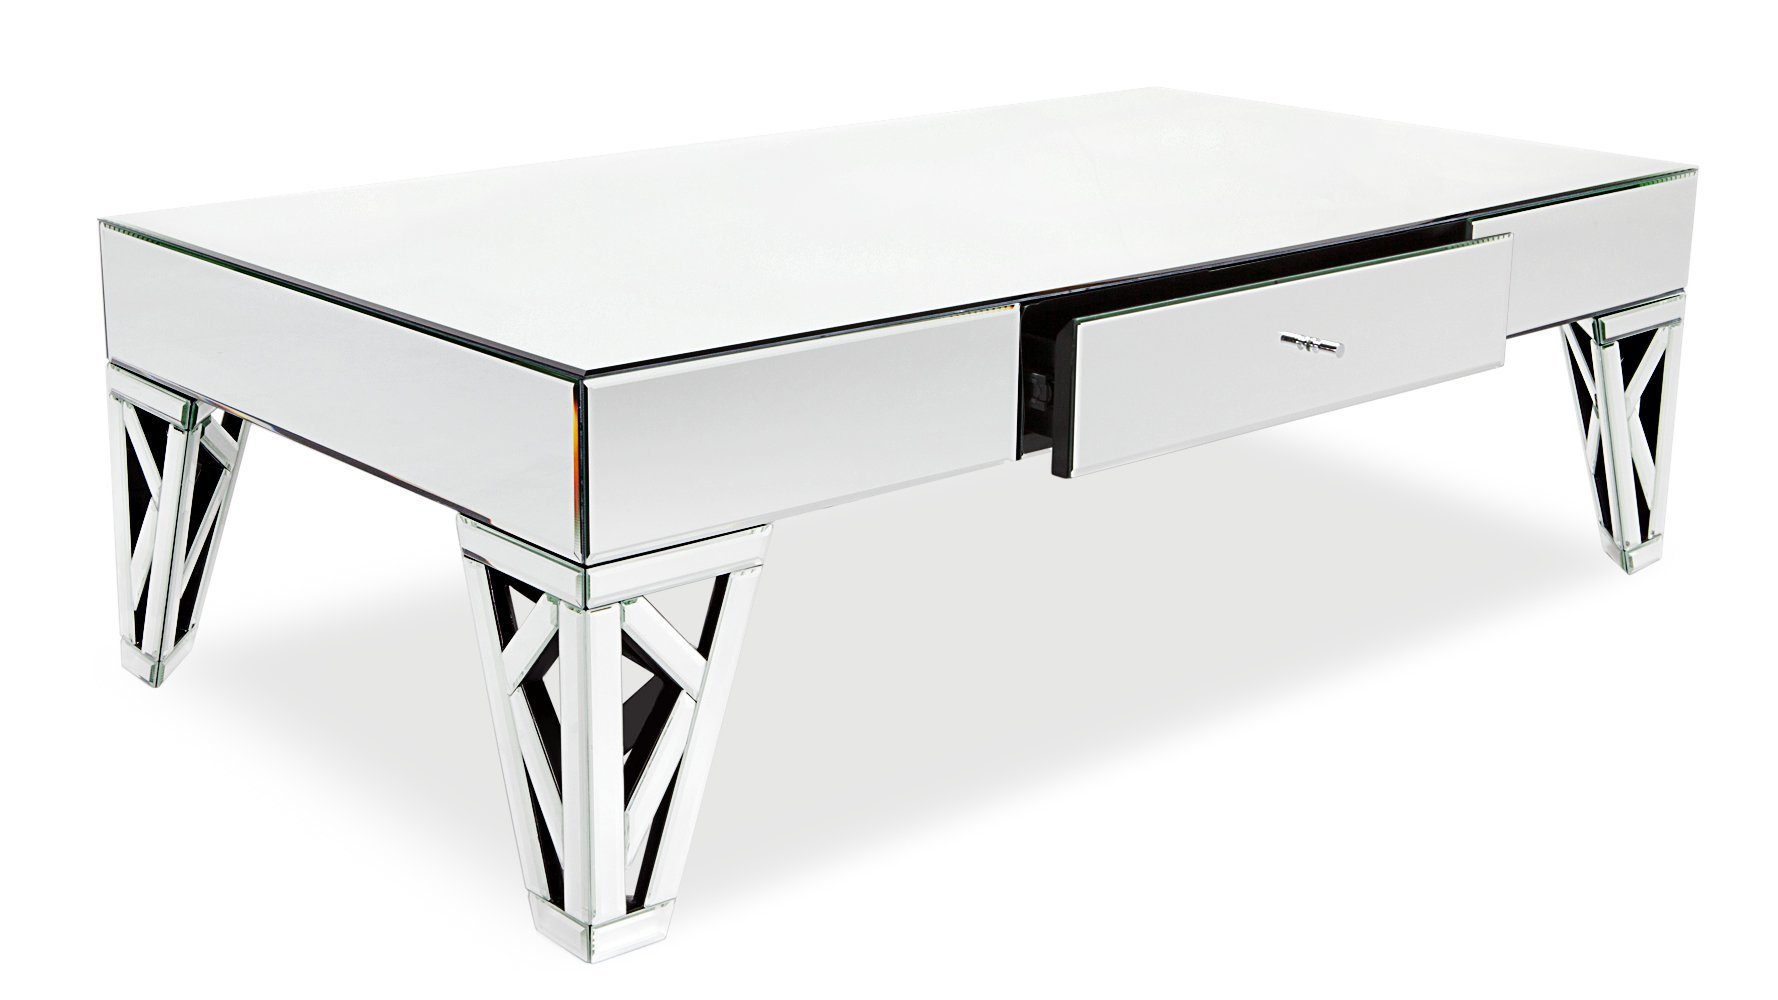 coffee tables living room modern console zuri azure white mirrored accent table furniture antique black square side patio lounger hairpin clear acrylic cocktail outdoor end ideas